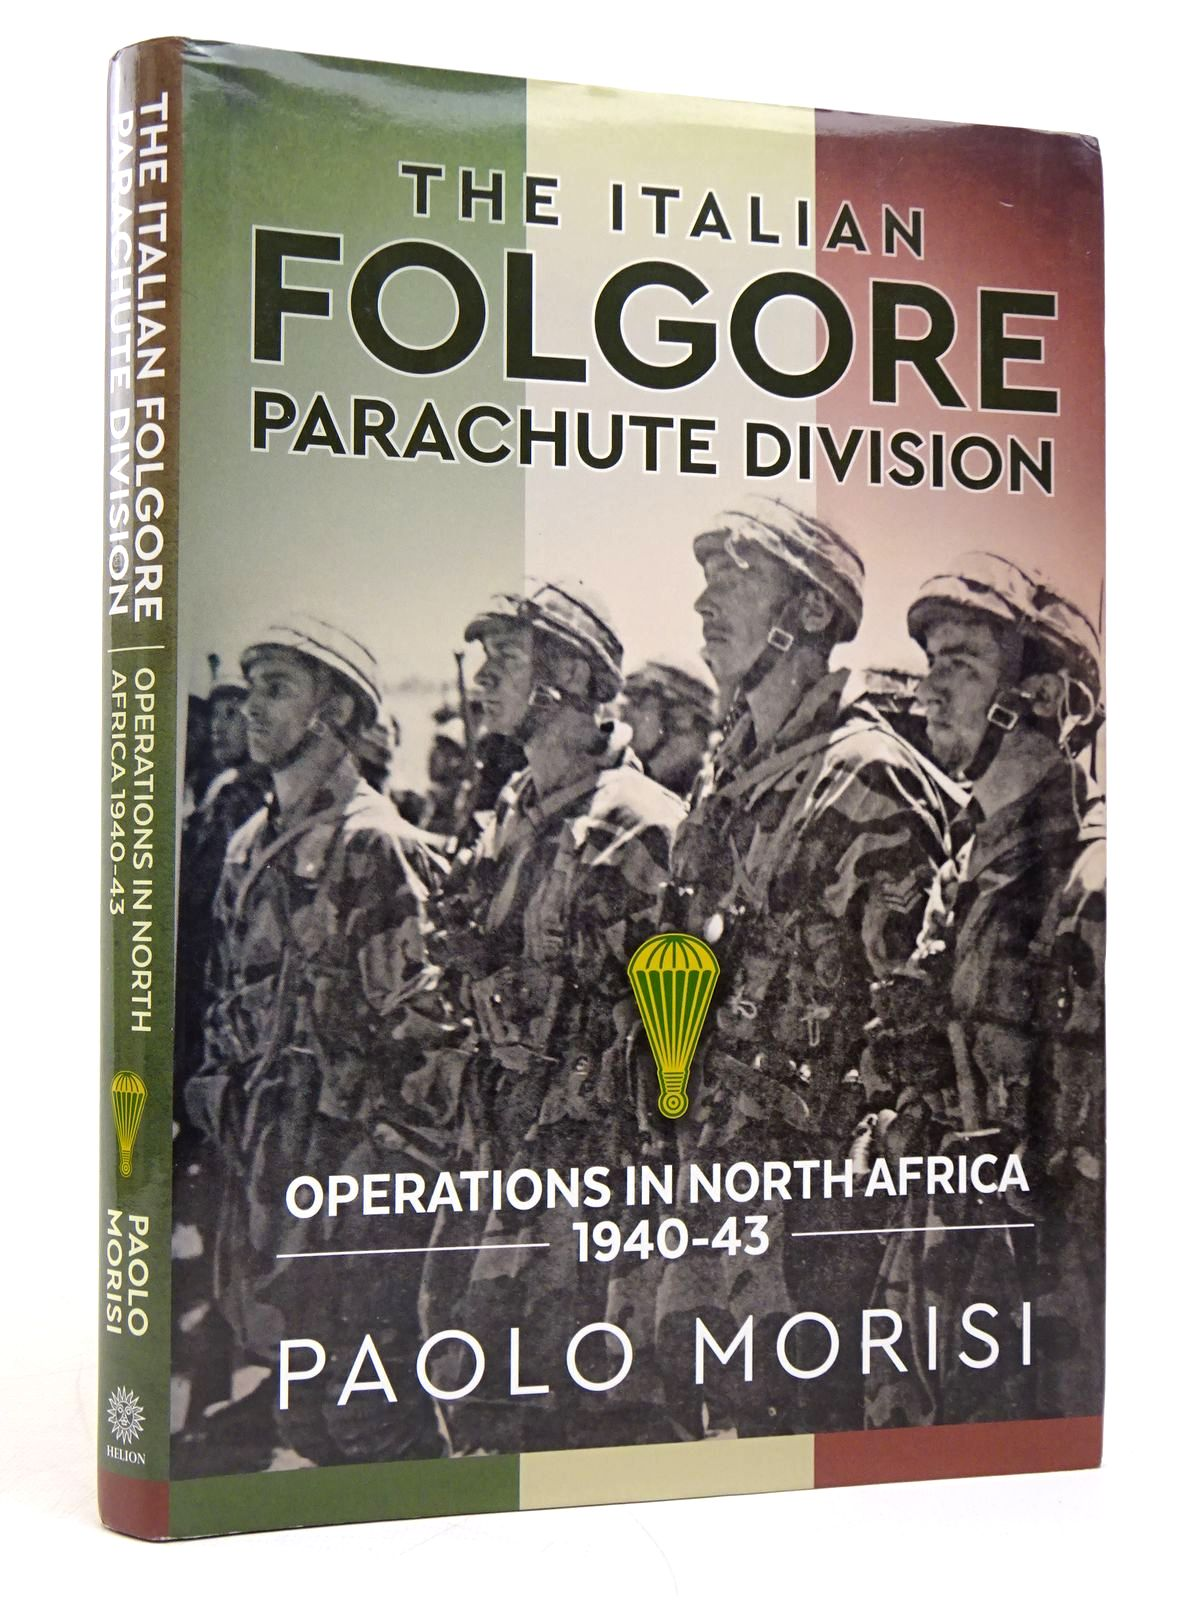 Photo of THE ITALIAN FOLGORE PARACHUTE DIVISION: OPERATIONS IN NORTH AFRICA 1940-43 written by Morisi, Paolo published by Helion & Company (STOCK CODE: 1817924)  for sale by Stella & Rose's Books